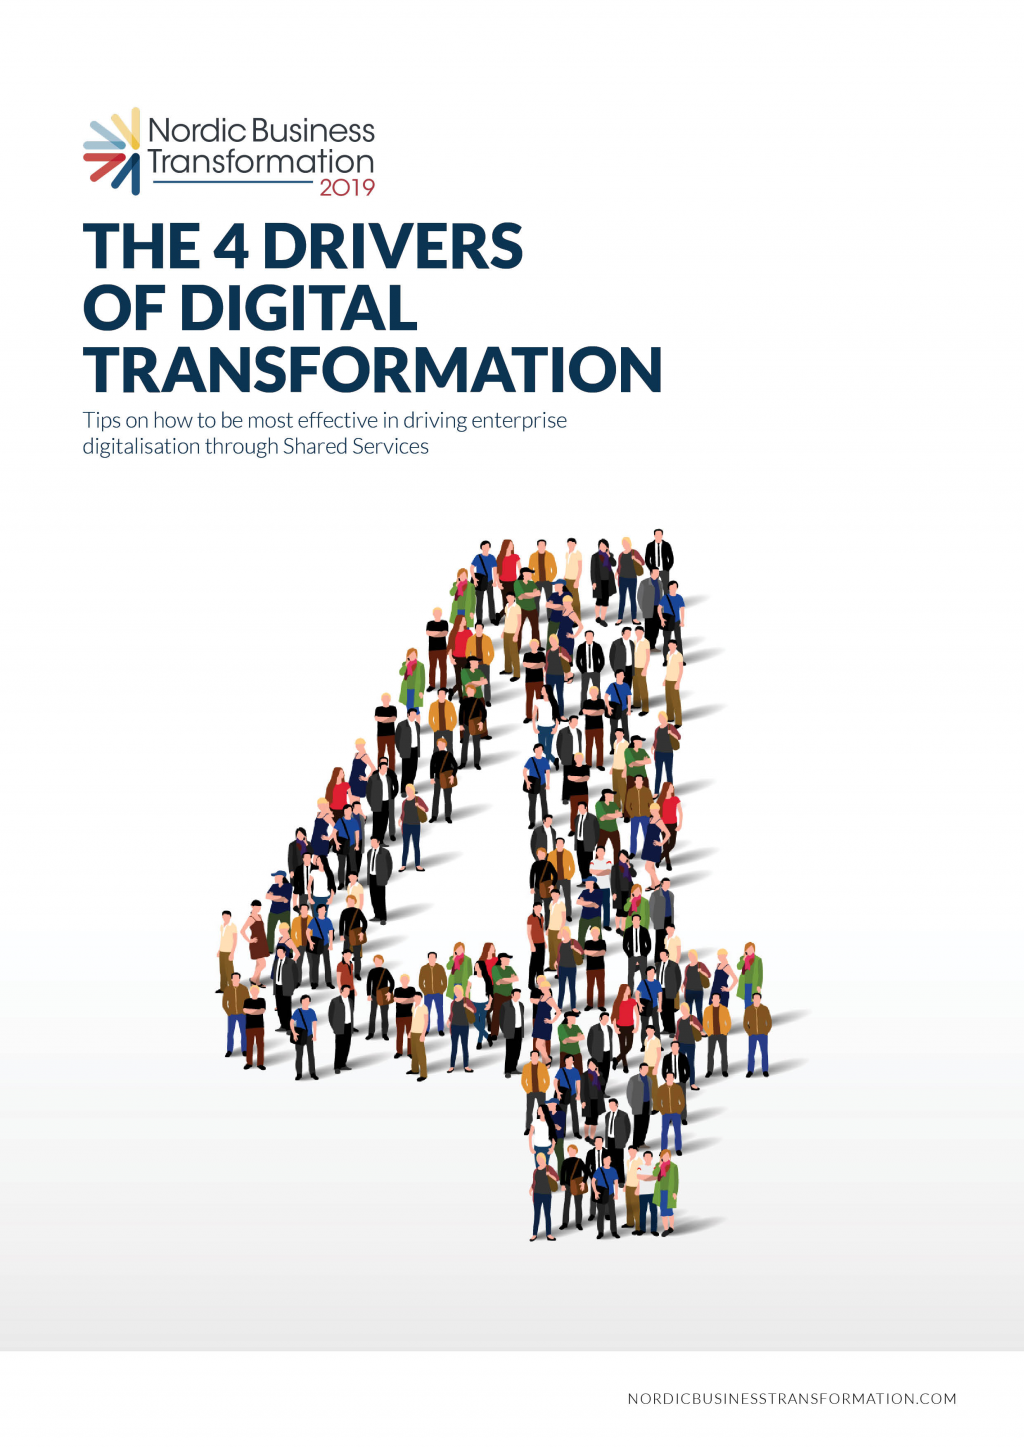 Nordic Business Transformation Exclusive - Spex - The 4 Drivers to Digital Transformation